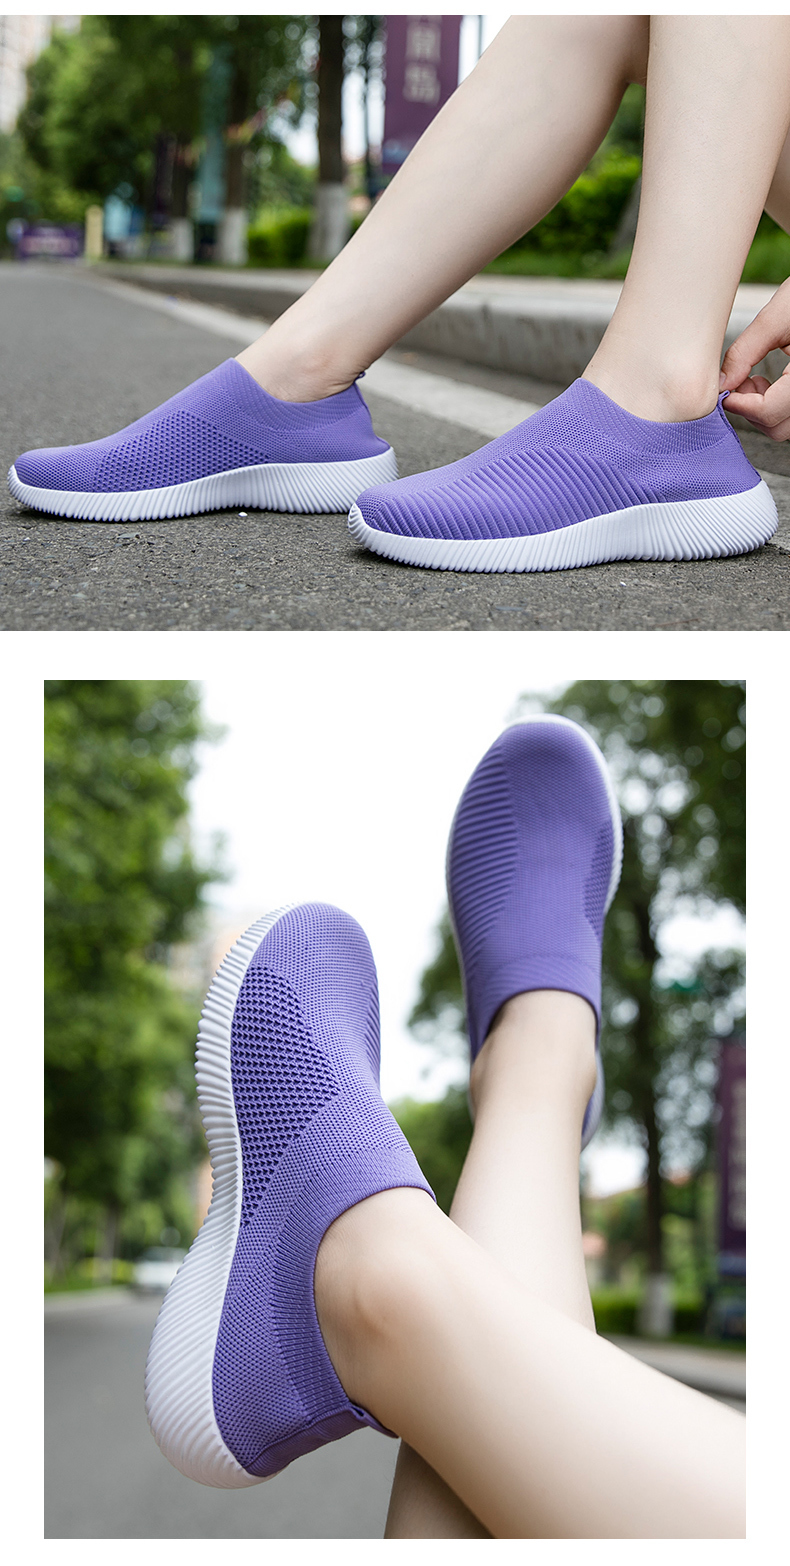 Slip On Flying Knit Women Fashion Sneakers Breathable Flat Heel Casual Shoes Round Toe Low Top Women Shoes XU034 (32)